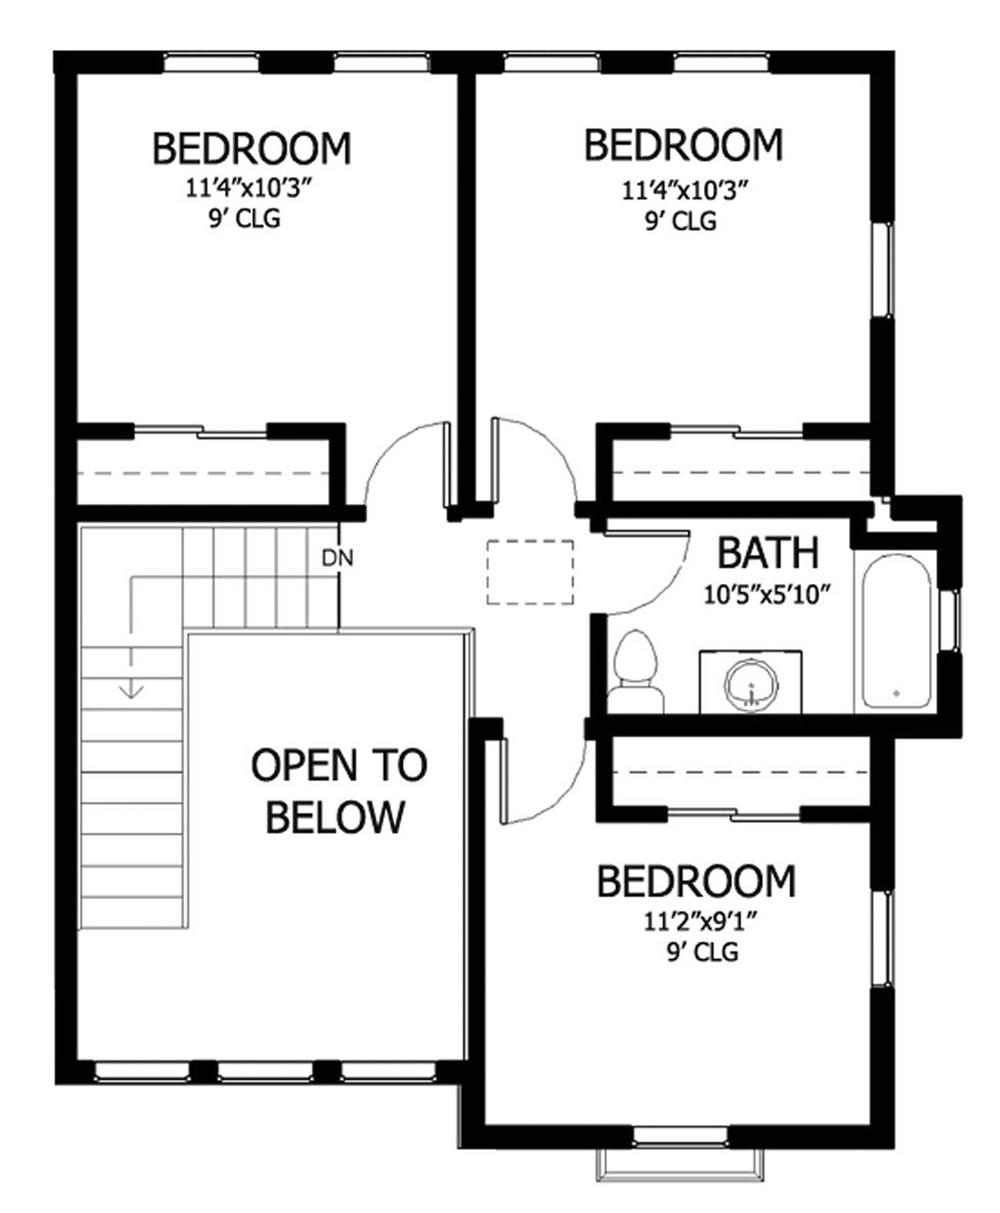 Second Floor Floor Plans amazing 3 second floor floor plans on other floor plan first floor plan second floor plan Floor Plan Second Story